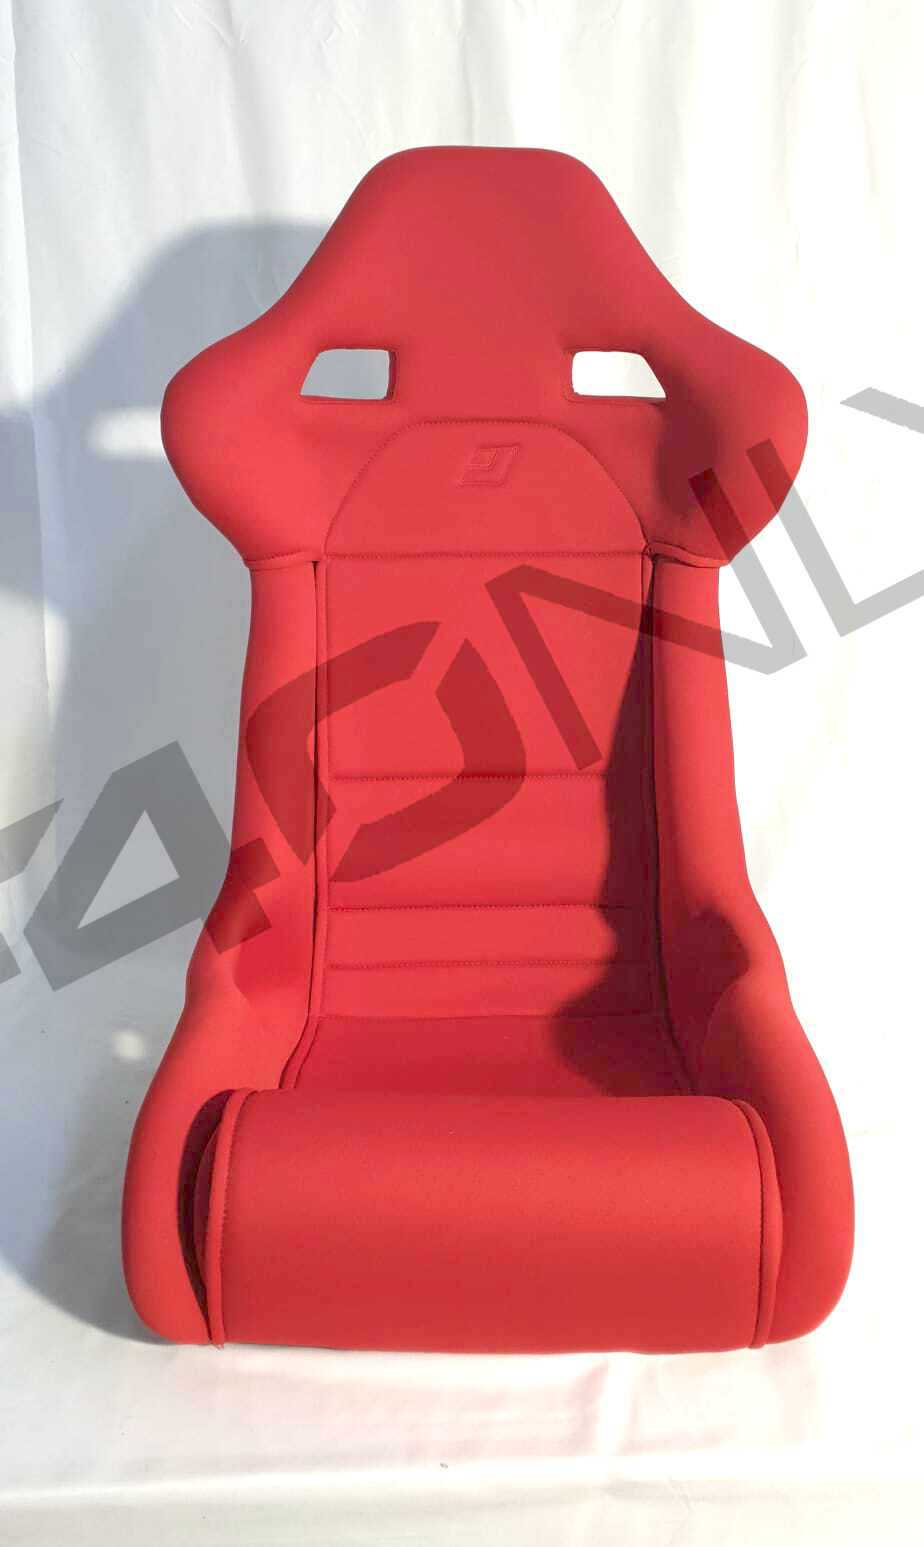 Seat Complete (size average) Image